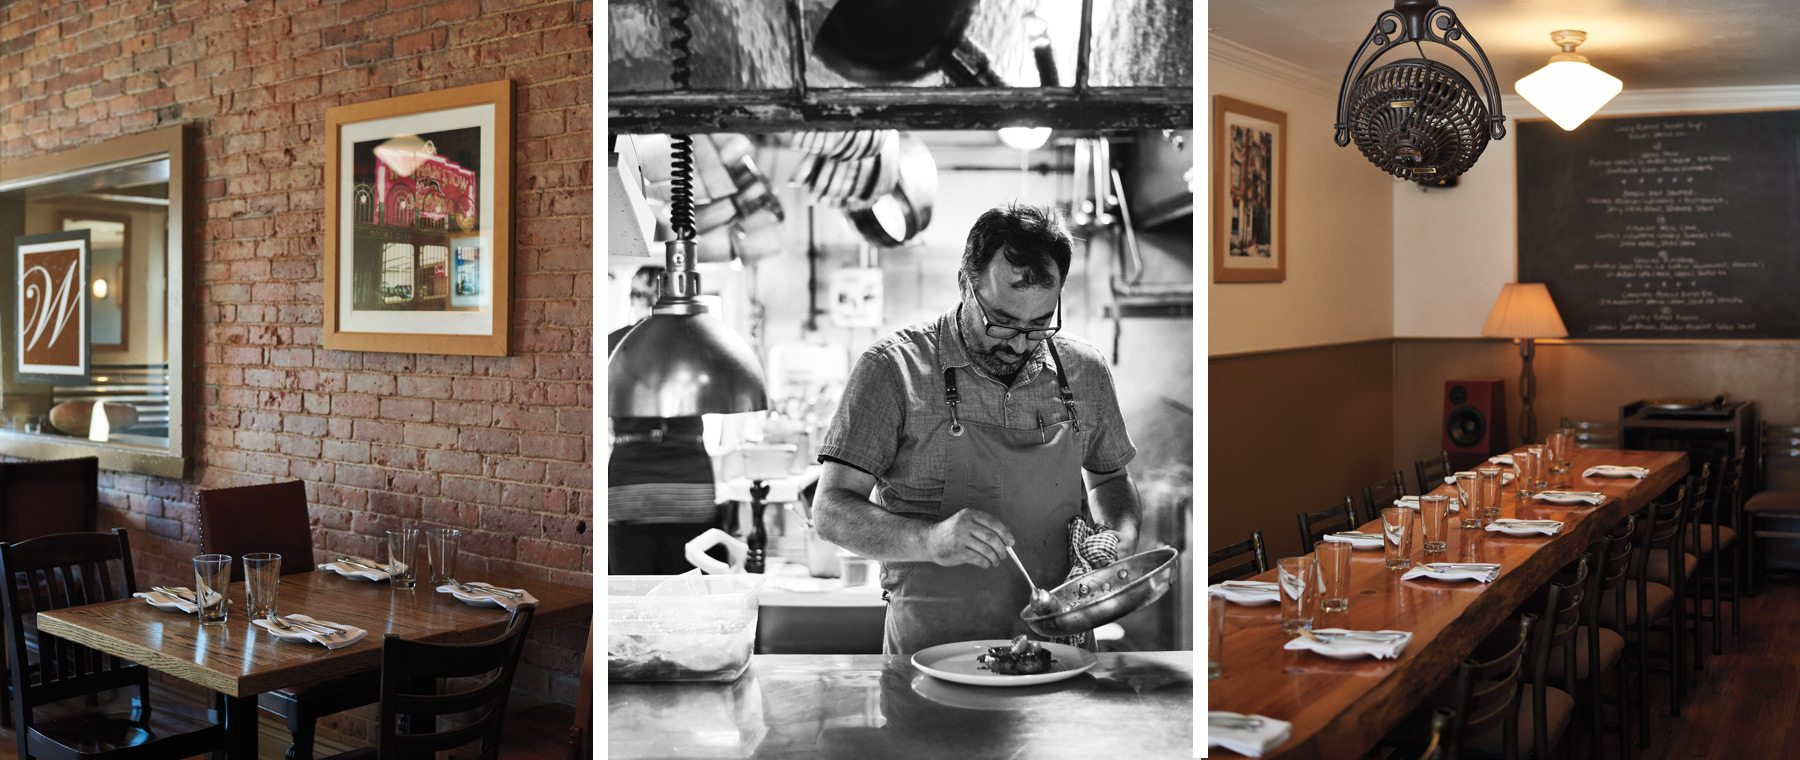 The Wellington Gastropub. Photos: Christian Lalonde